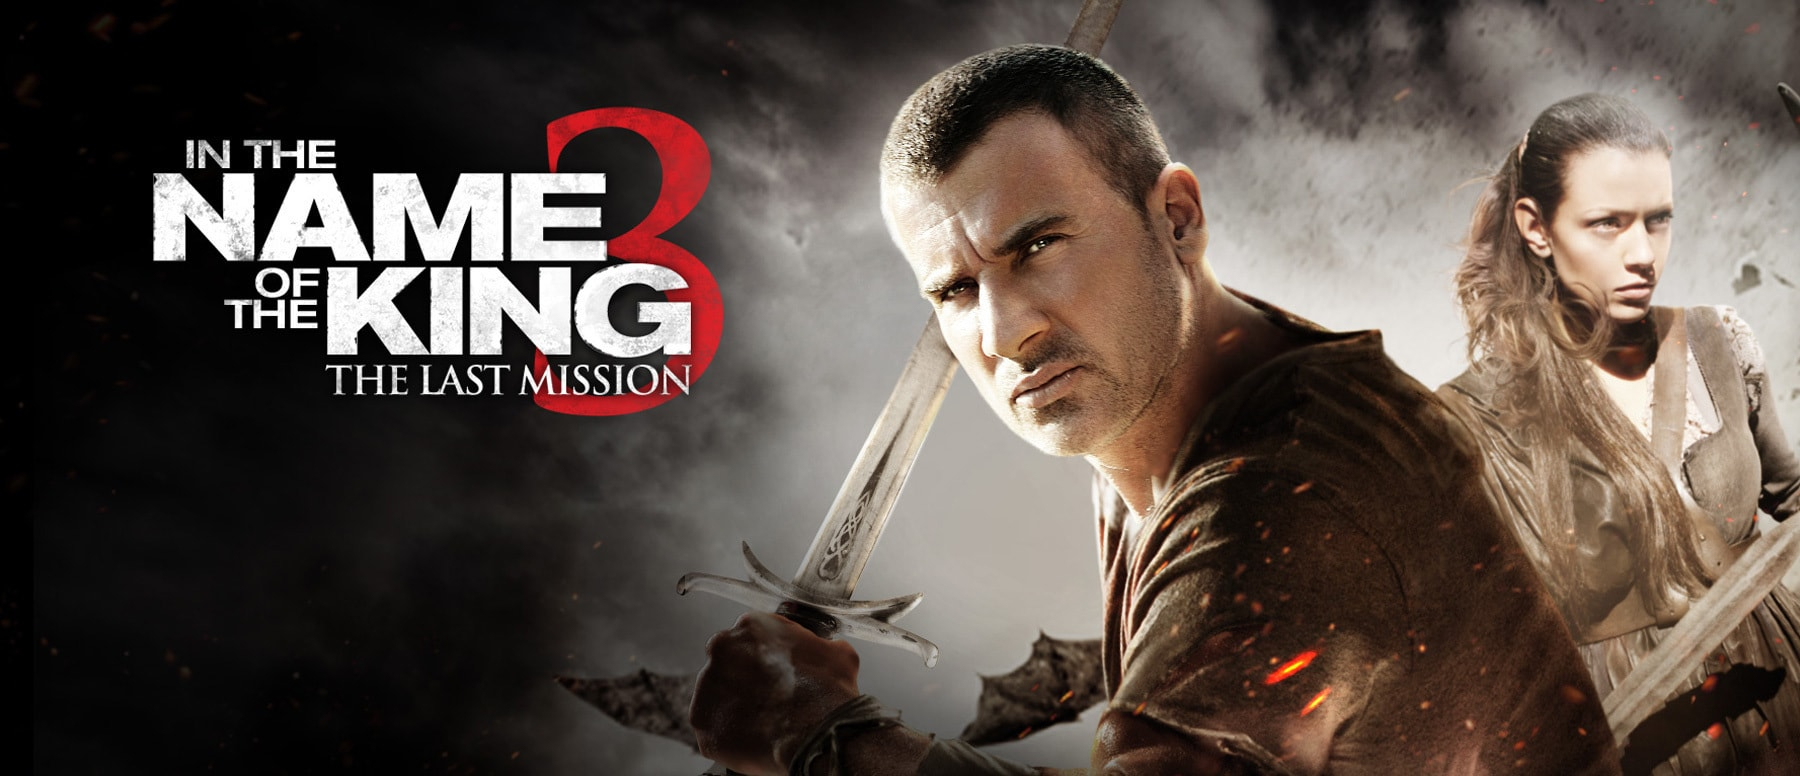 In the Name of the King 3: The Last Mission Hero